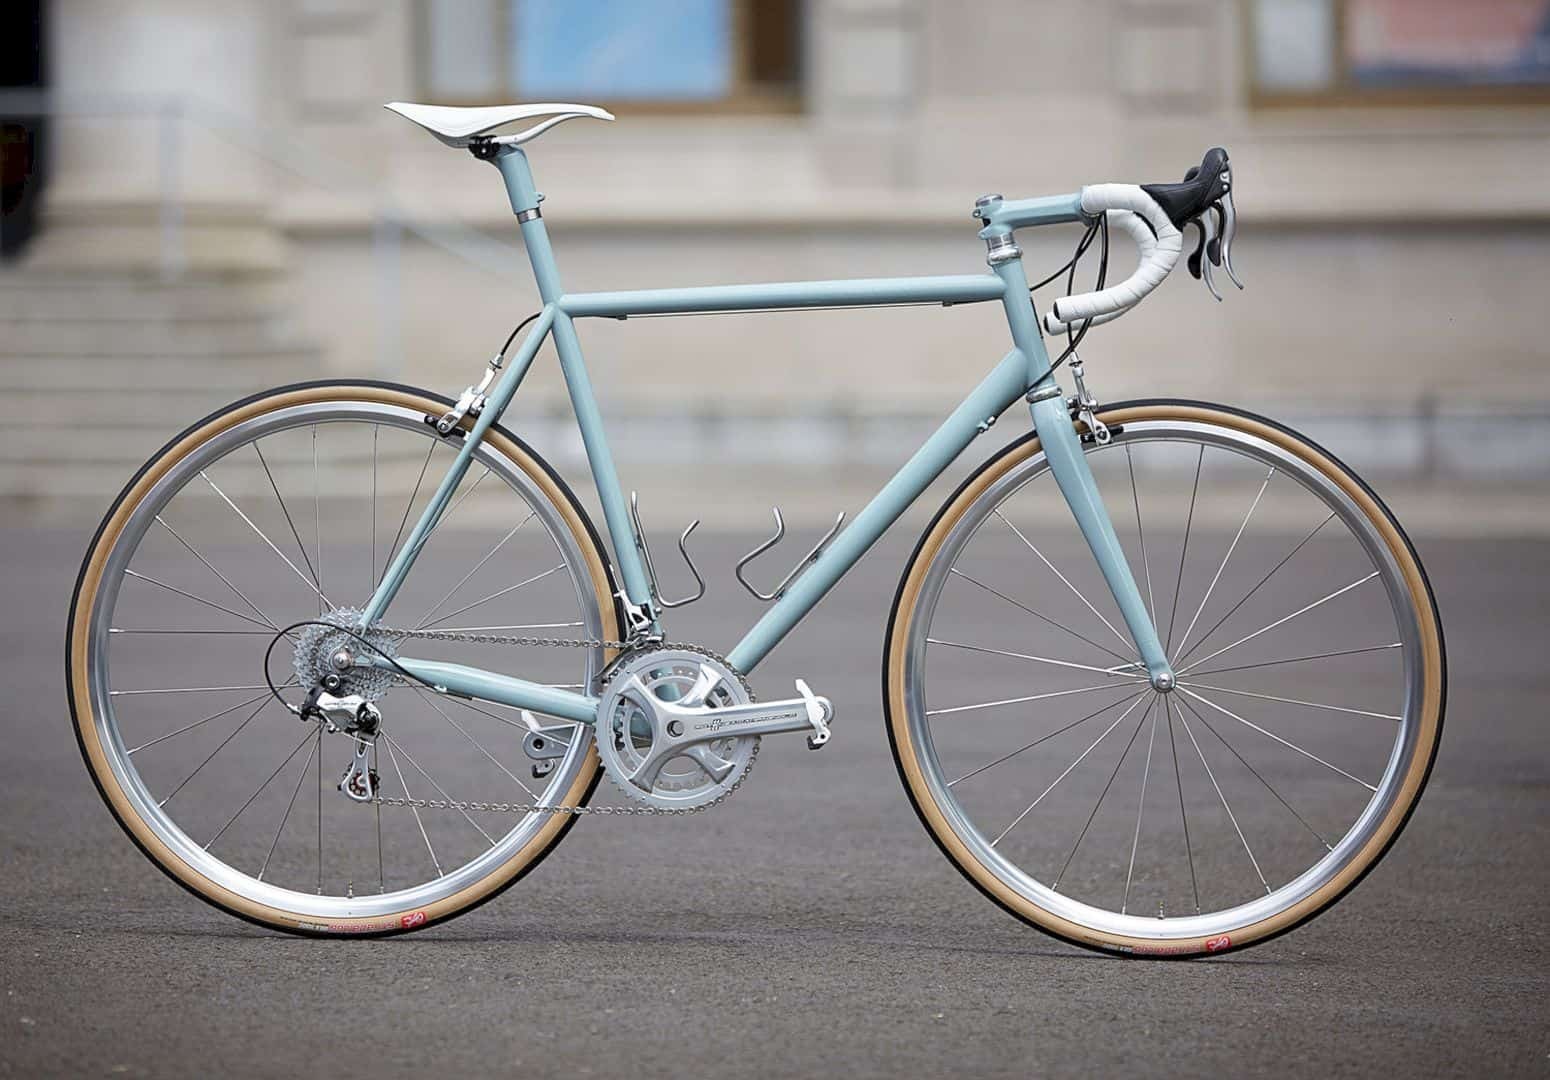 The OG Classic: Minimalist Bike with A Vintage-Inspired-All-Day Race Machine